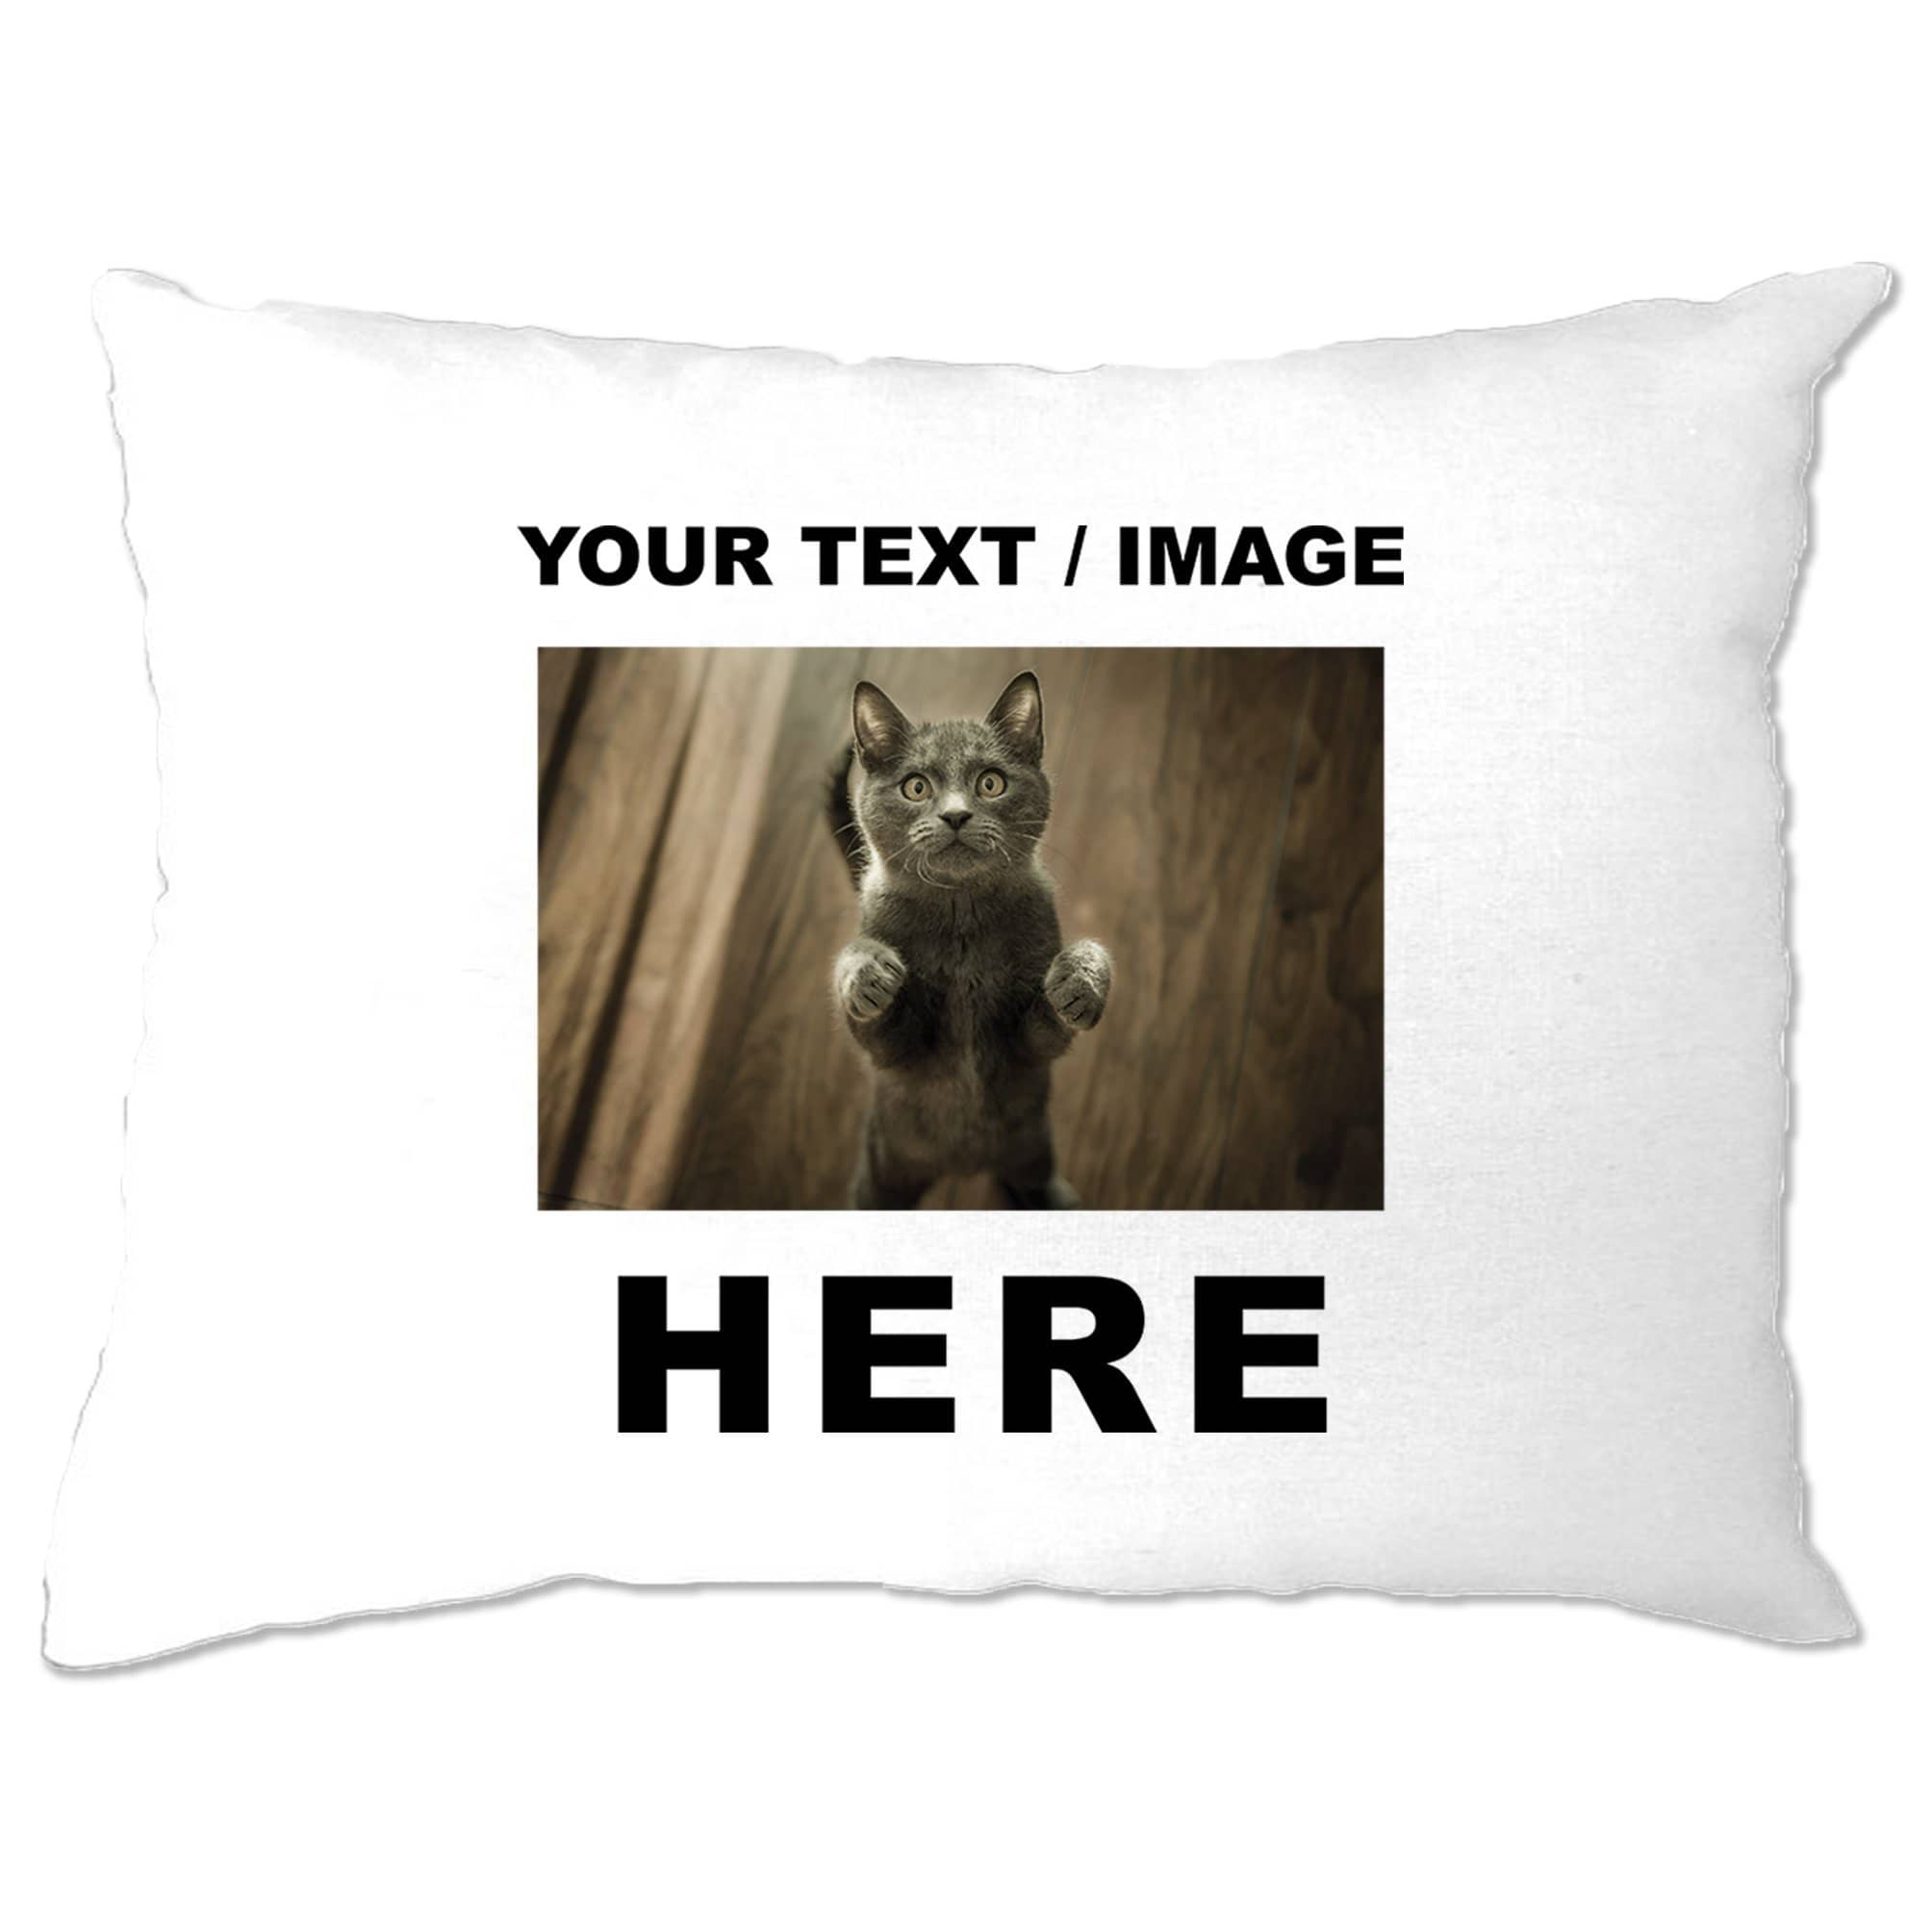 Custom Printed Pillow Case with Your Text or Image